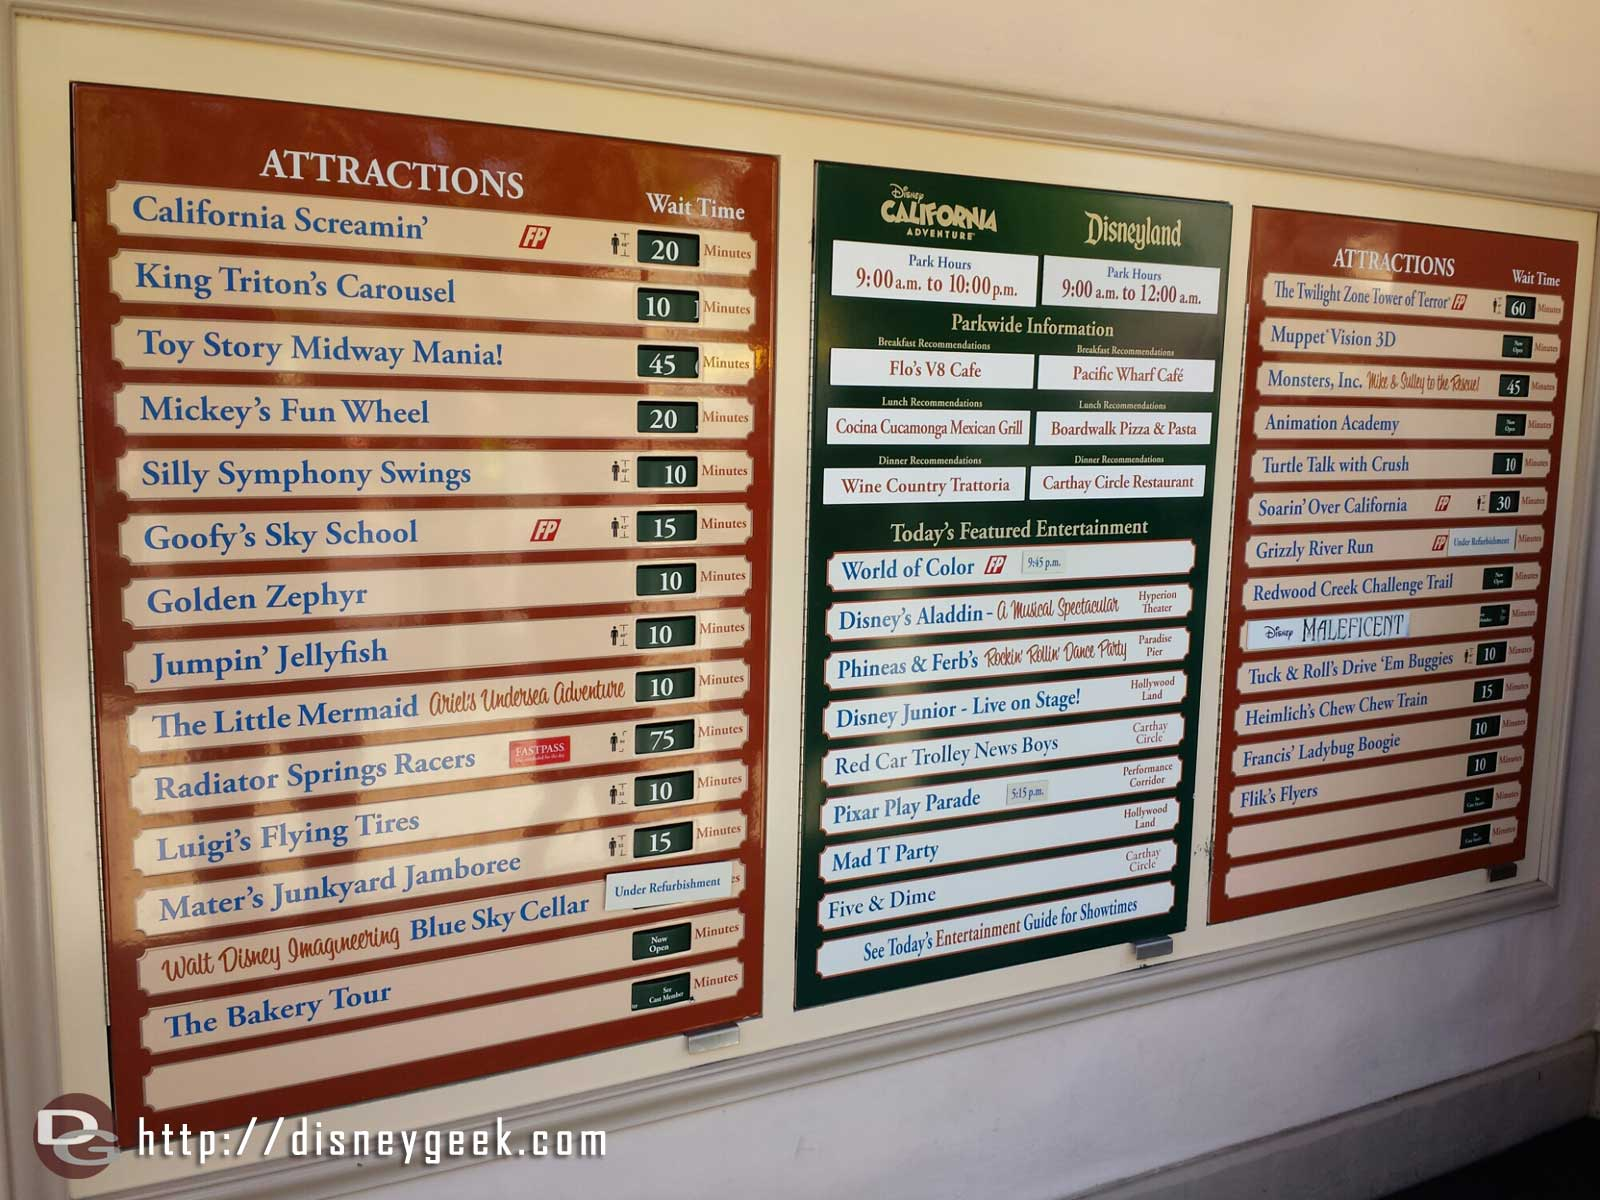 Current DCA waits as of 1:20pm